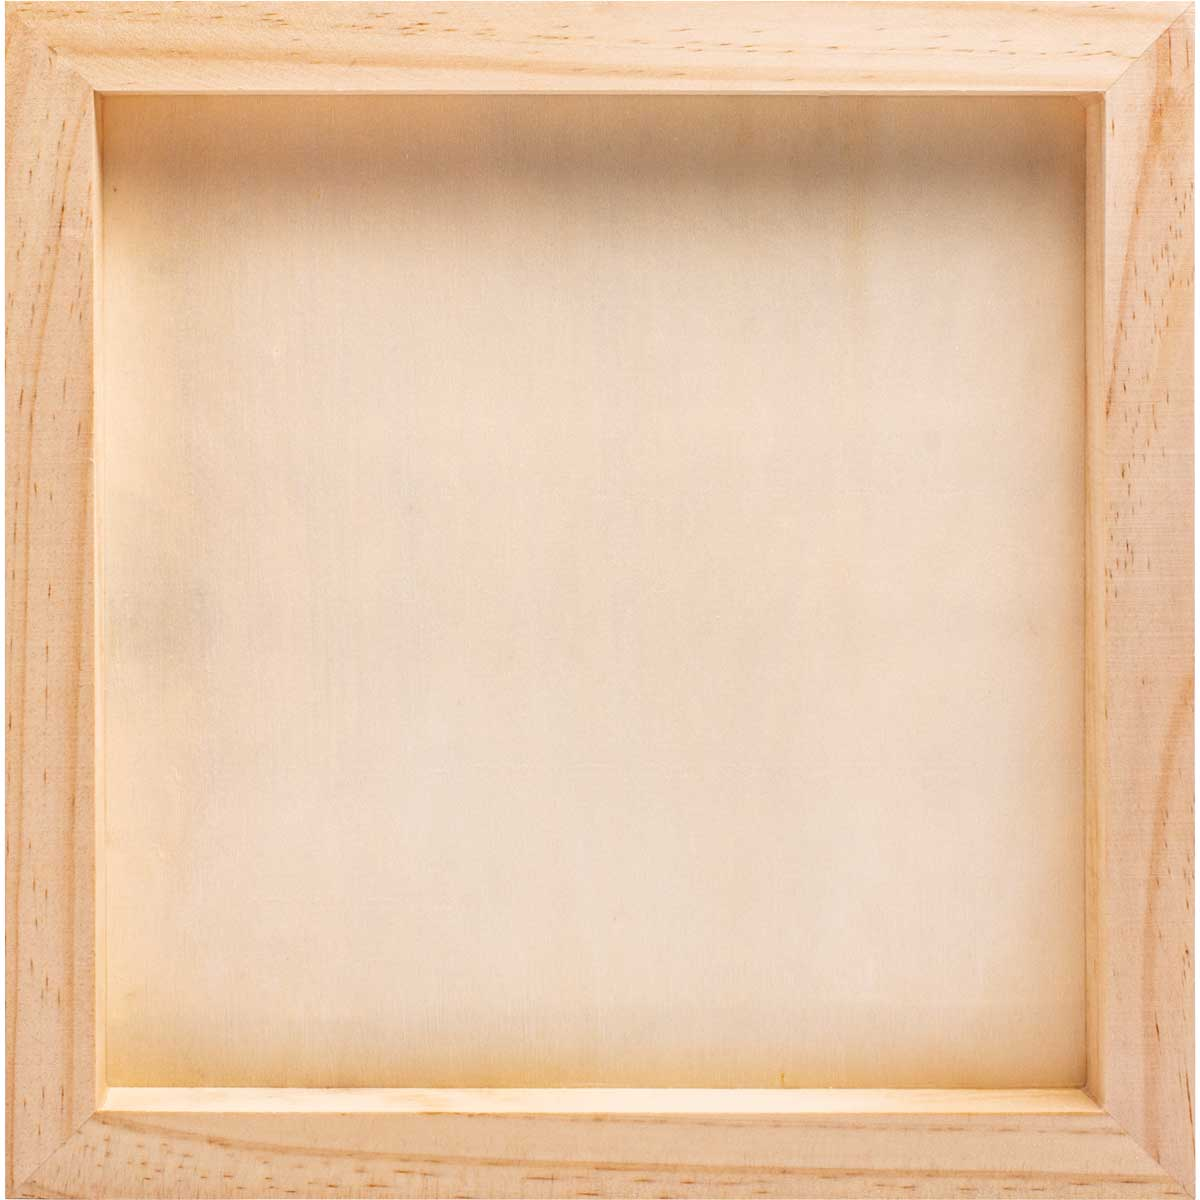 Plaid ® Wood Surfaces - Canvas Panel, 10